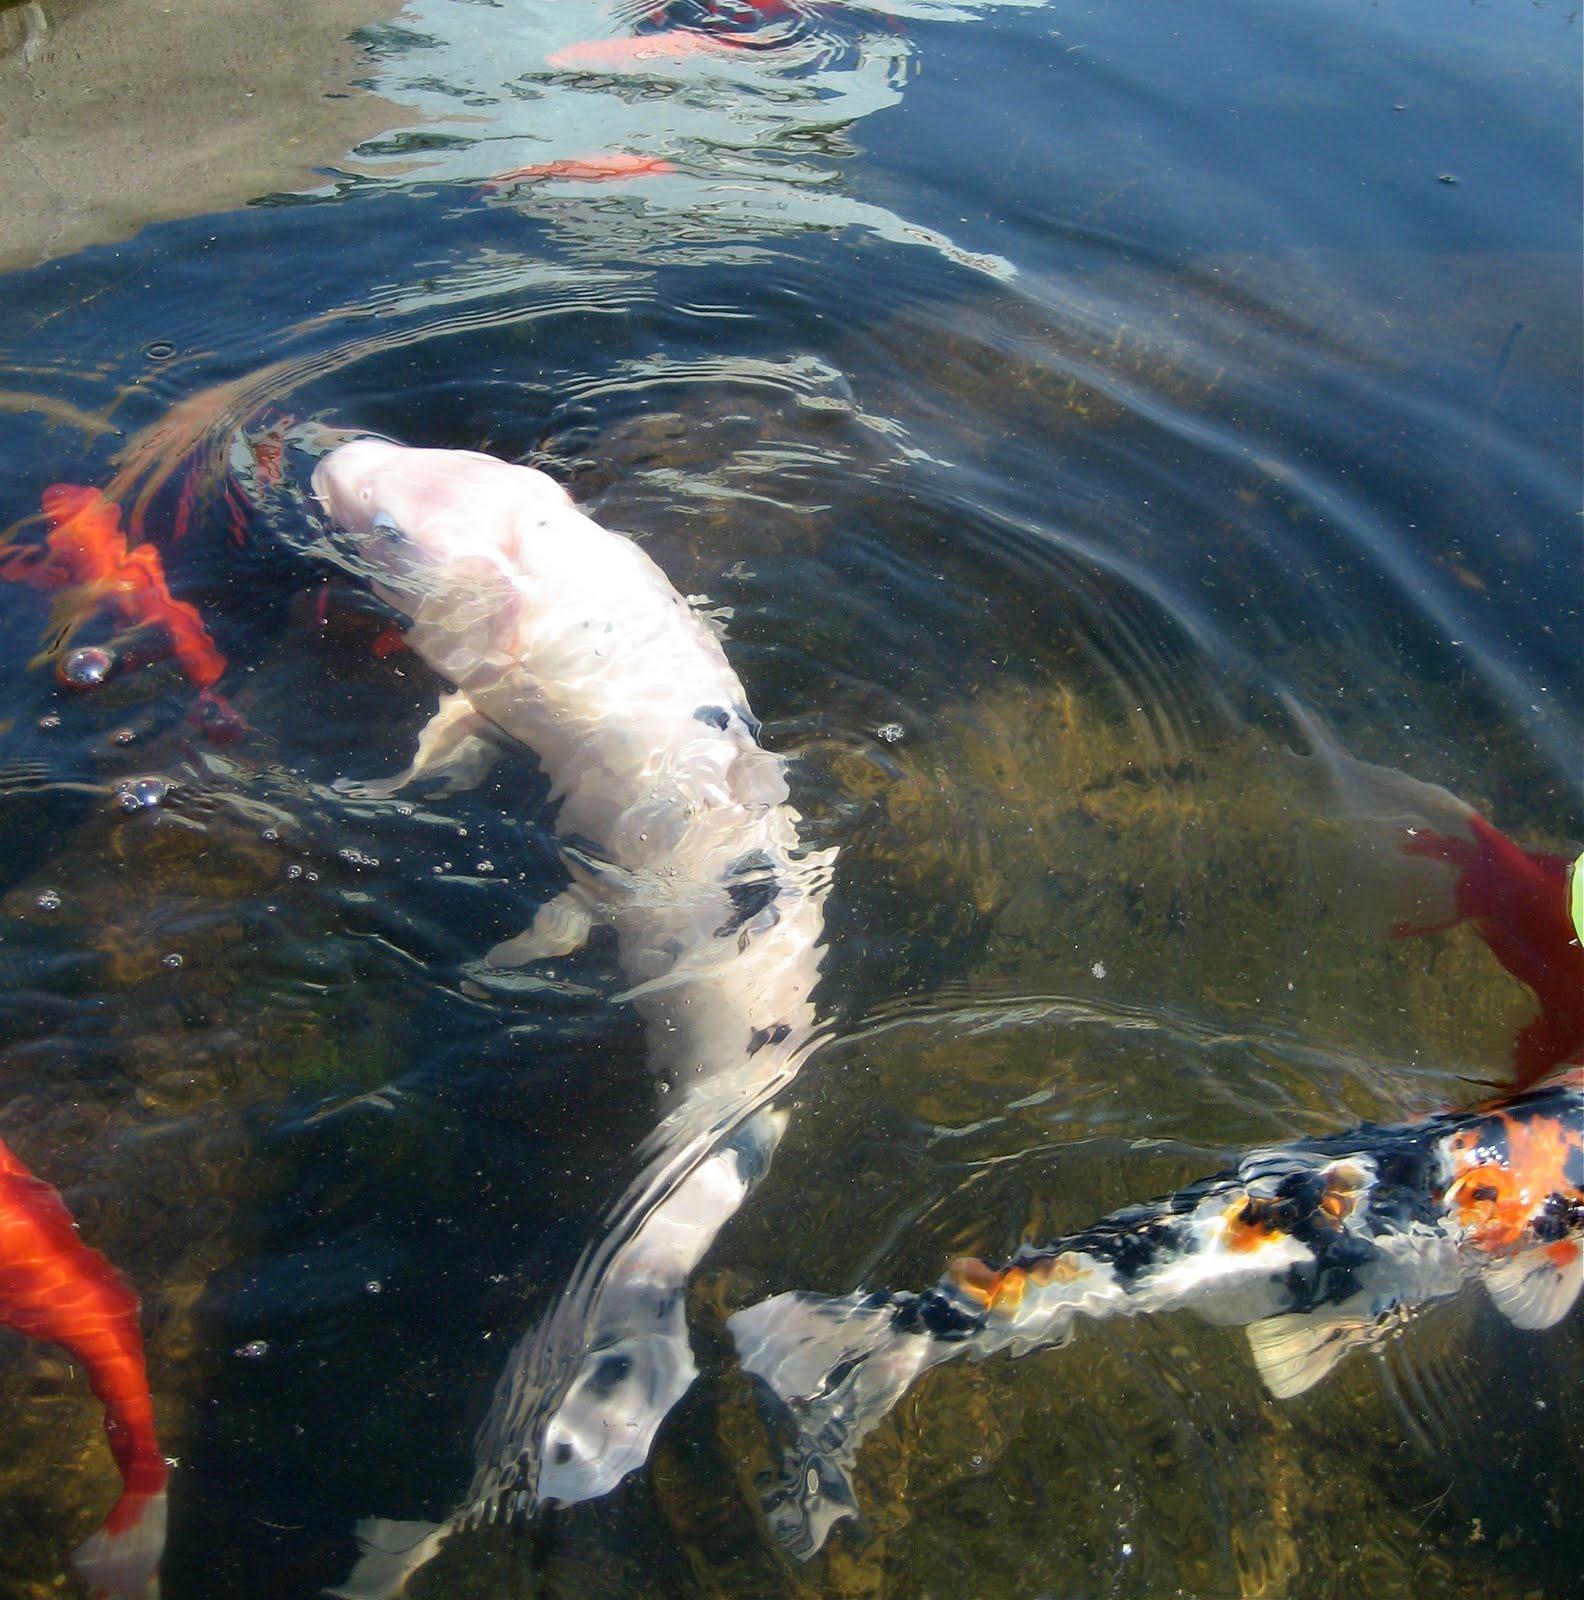 Susan rosen pics a big fish in a small pond for Big fish little pond